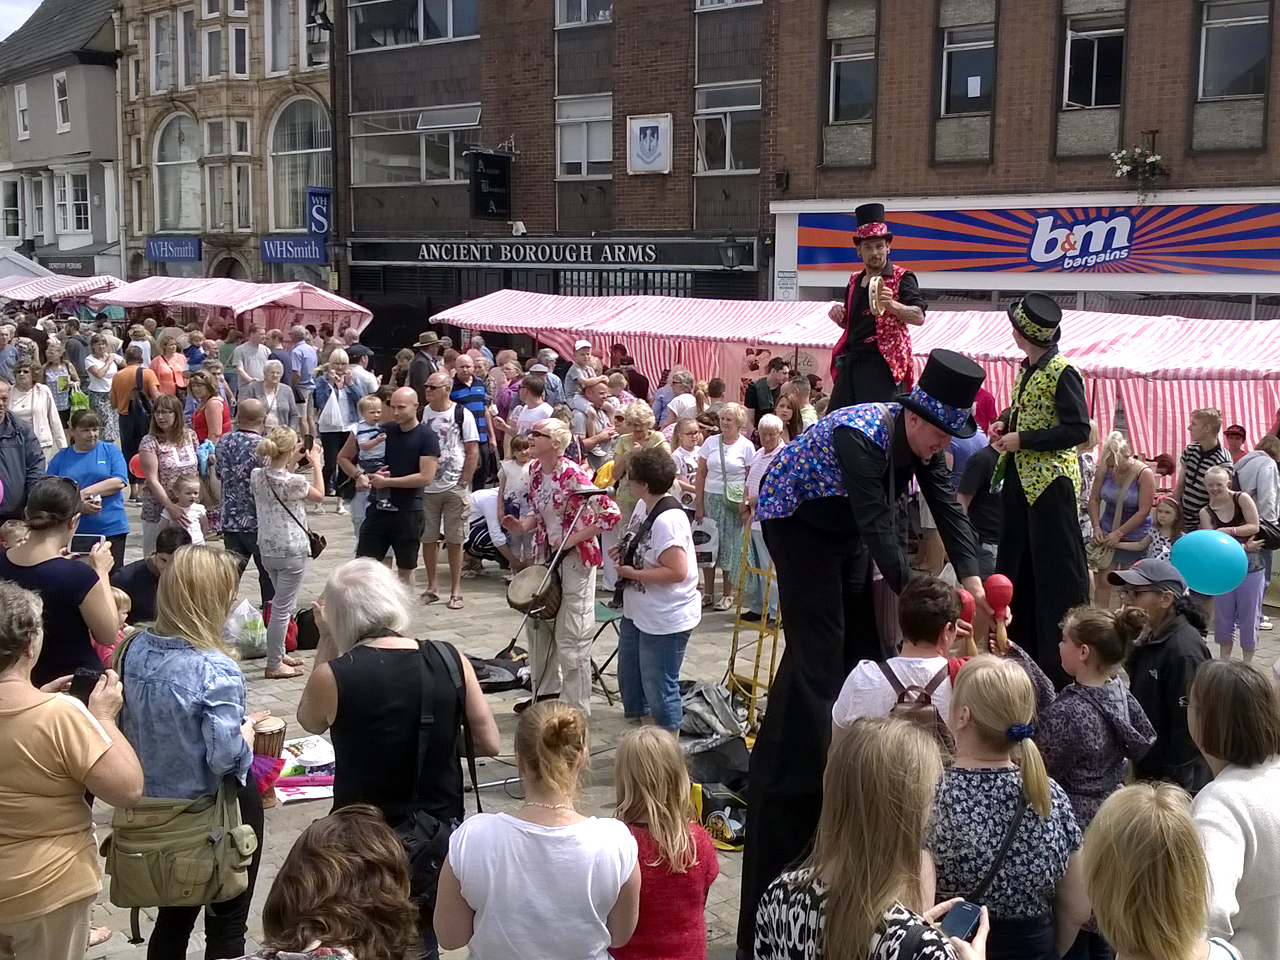 The Joker Entertainment catering to Public Events in the East Midlands, Nottingham, Nottinghamshire, South Yorkshire, Lincolnshire, Lincoln. Performing with stilt walking, balloon modelling, face painting, circus workshops, participation activities